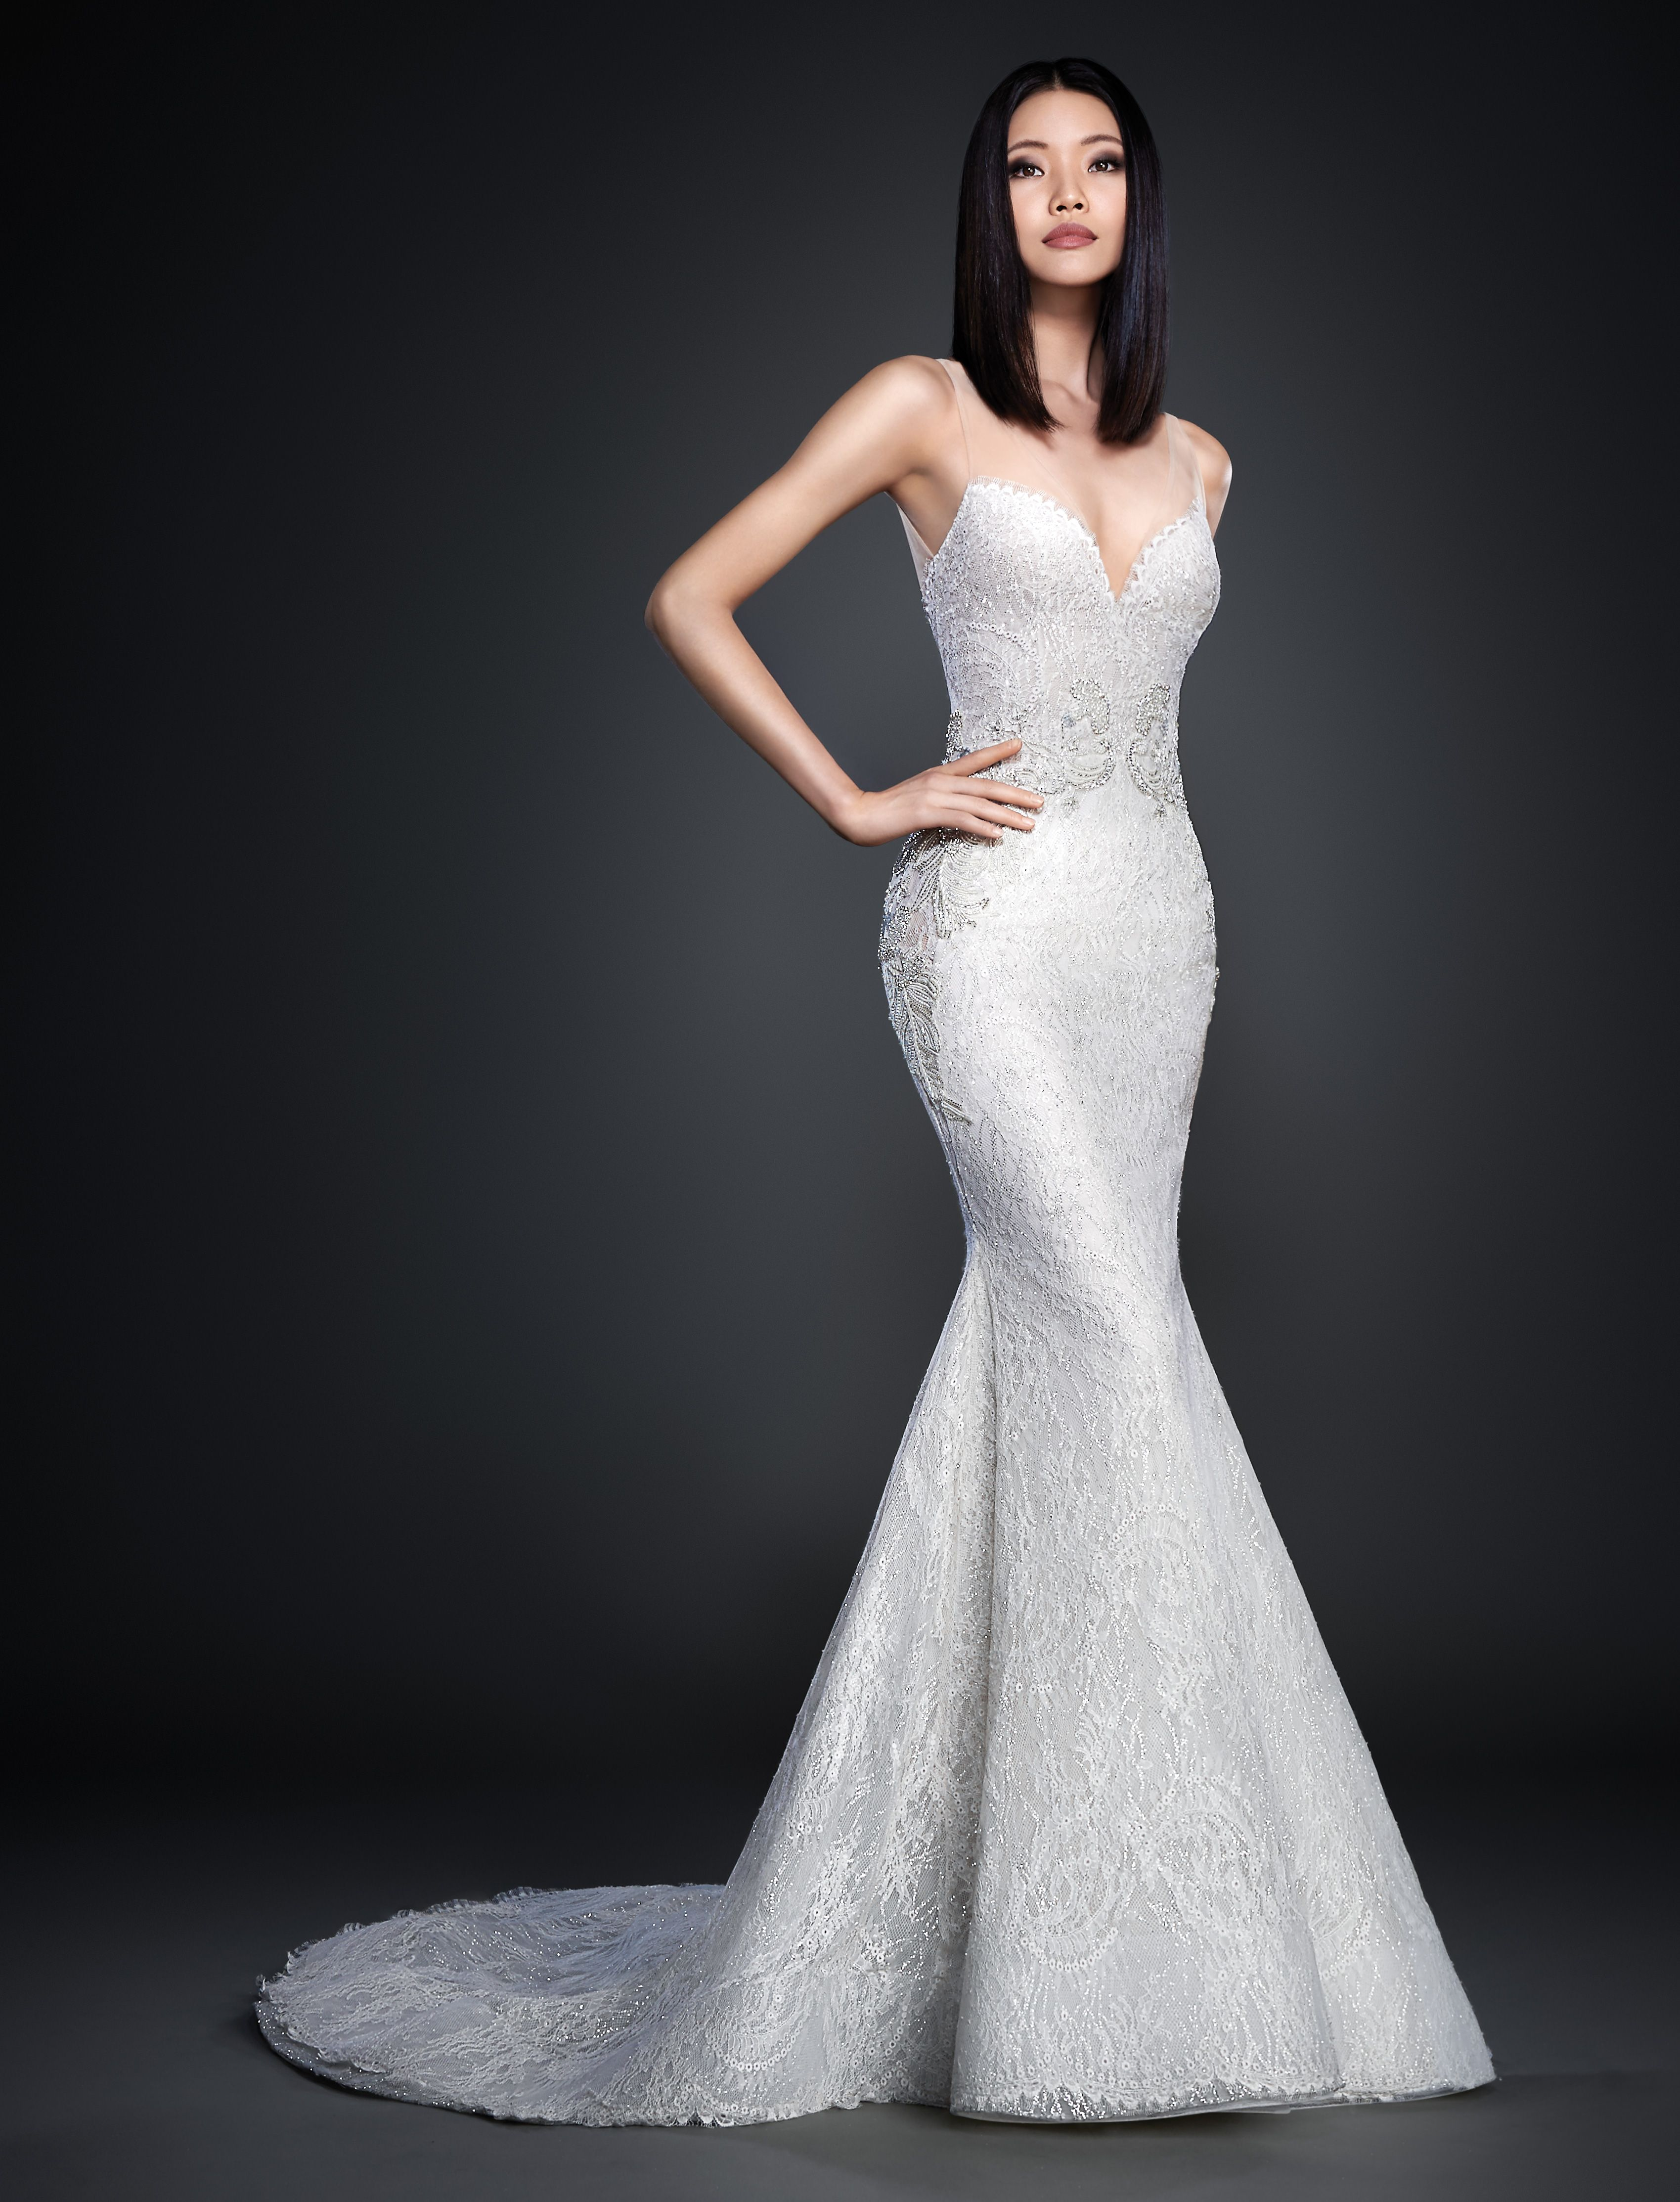 NEW AT JJ KELLY Ivory Chantilly Lace Over Silver Shimmer Tulle Trumpet Bridal Gown